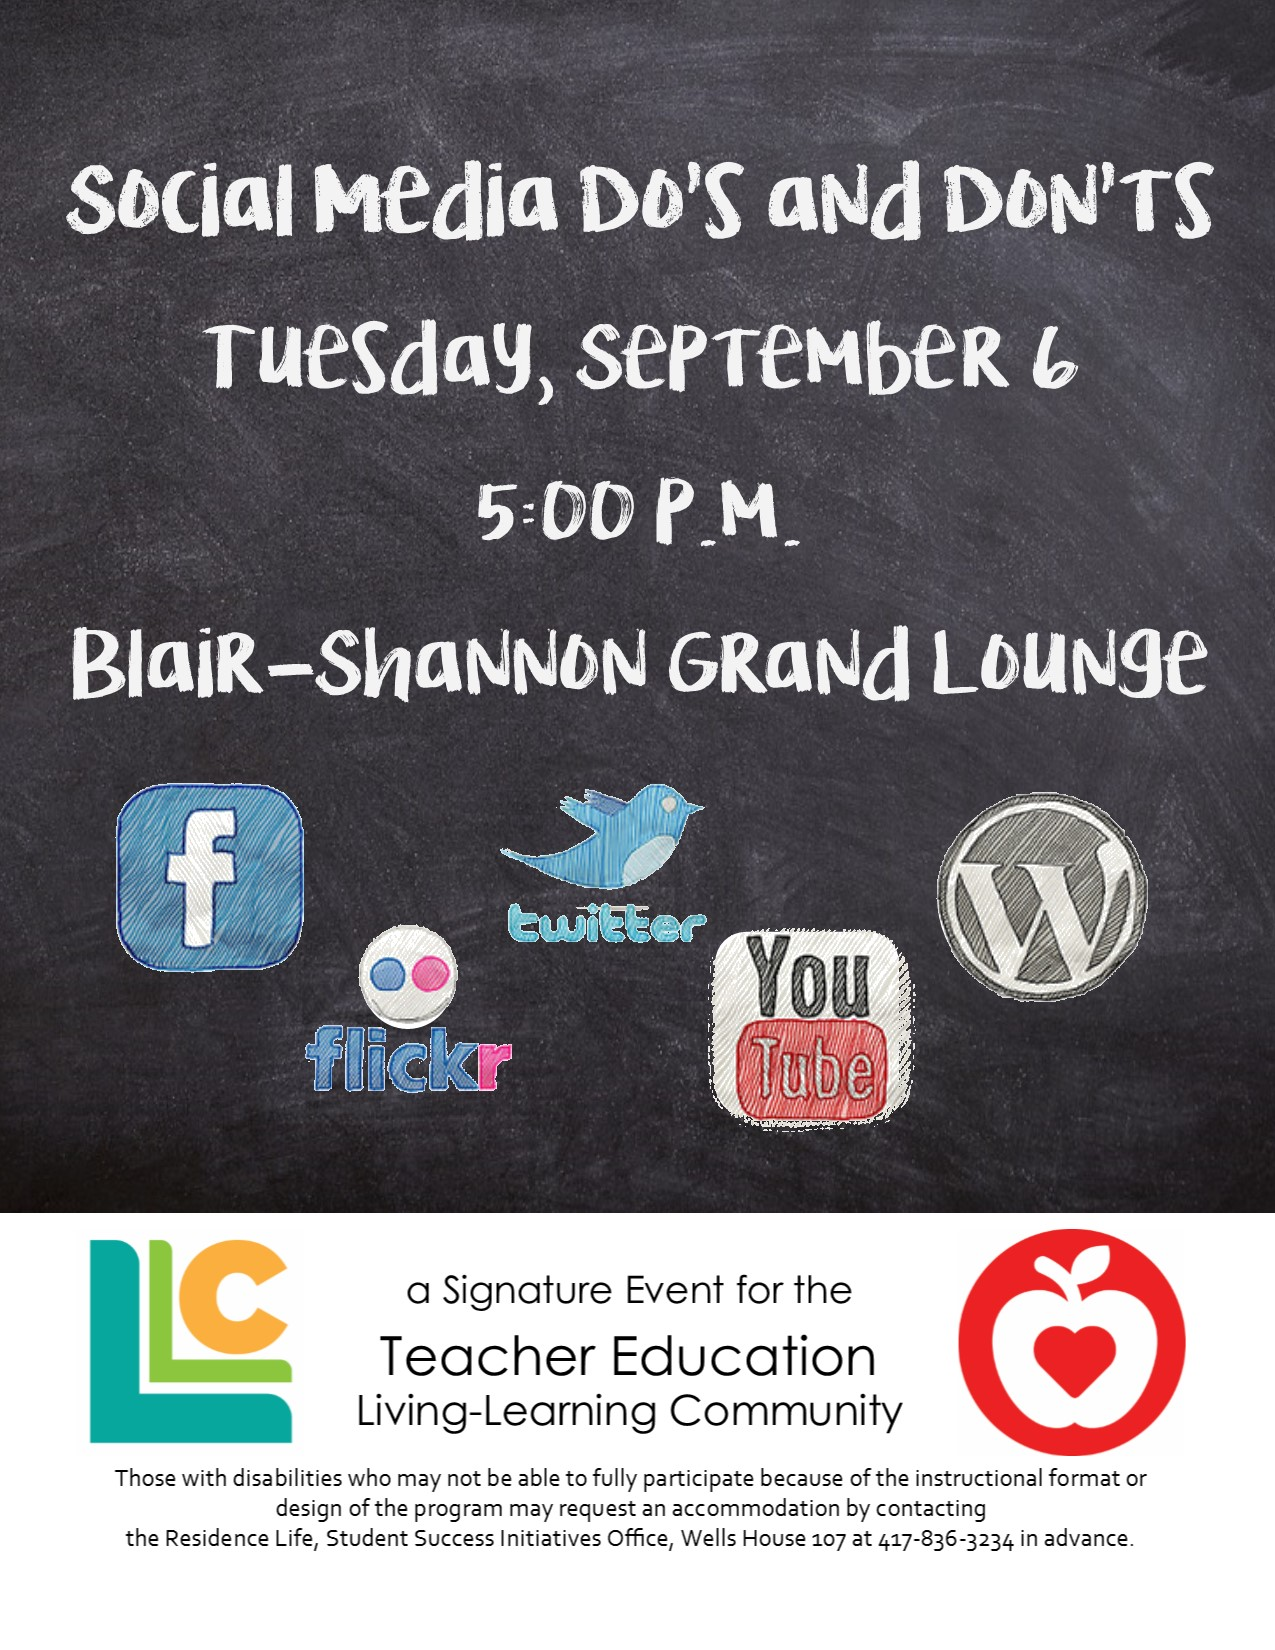 Teacher Education LLC Event Social Media Do's and Don'ts